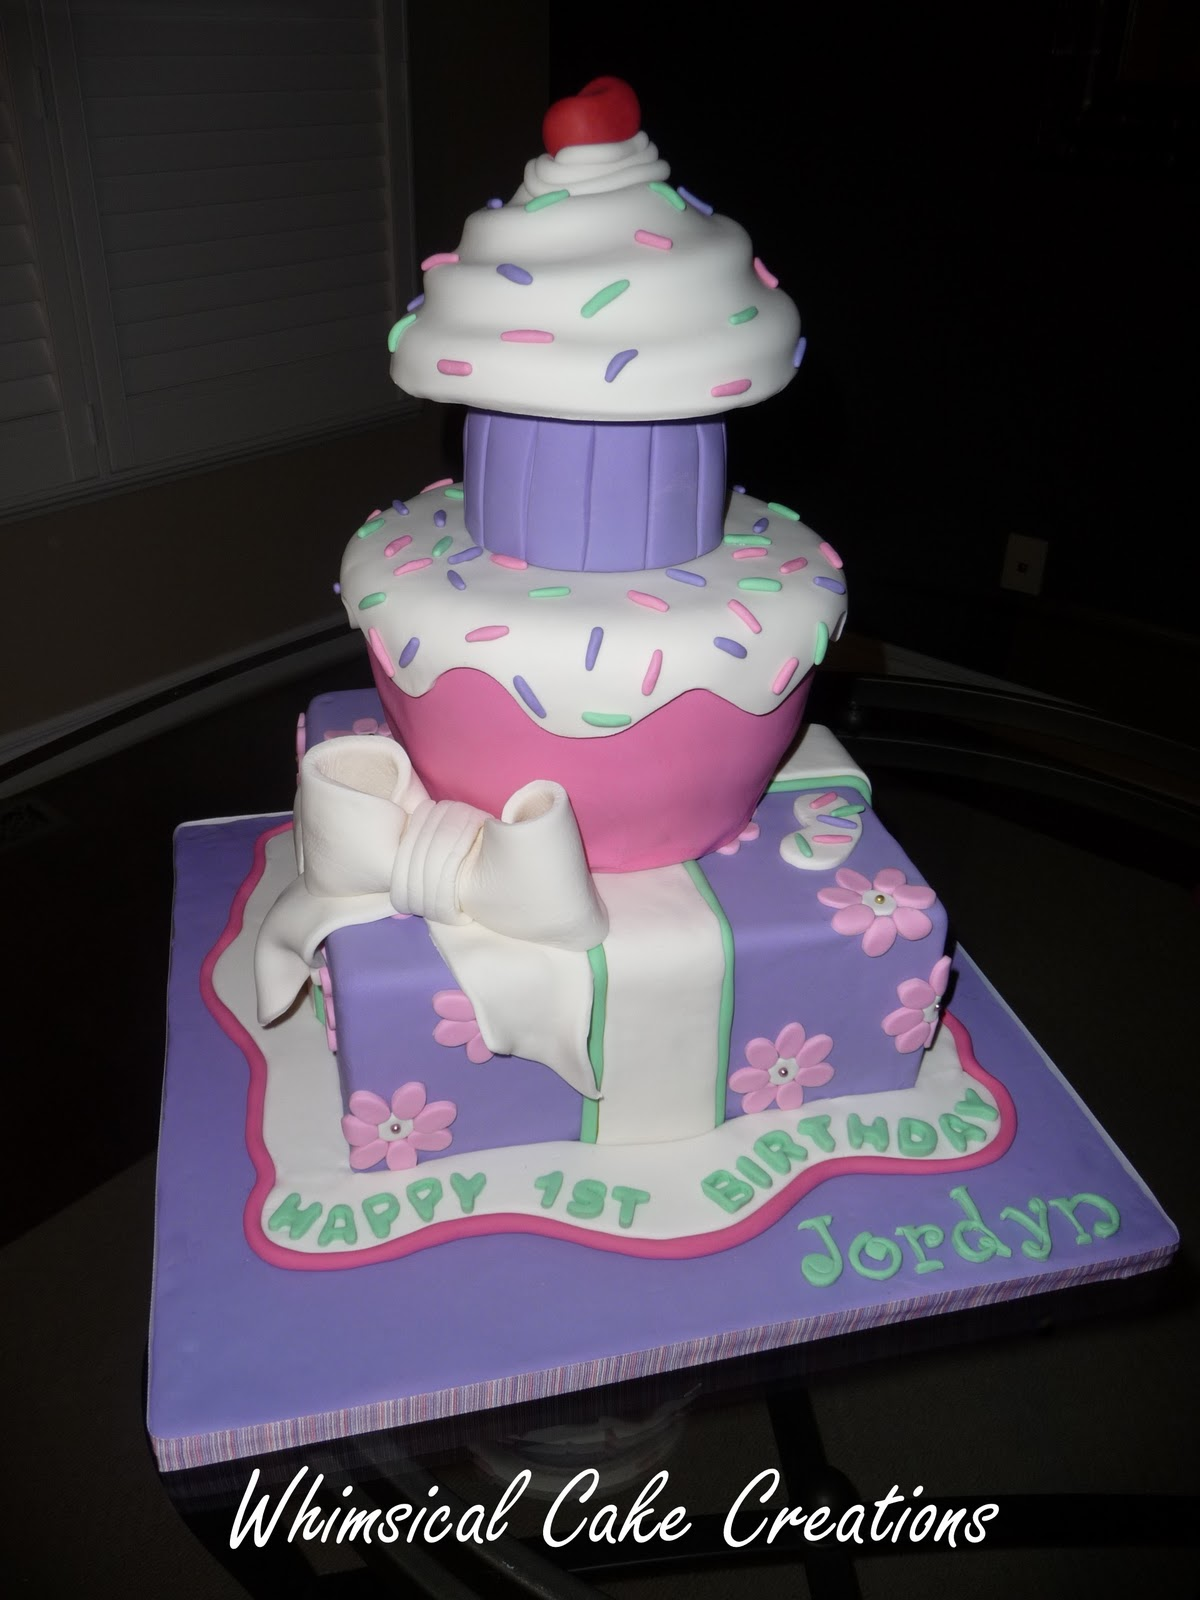 Cake Designs First Birthday : WhimsicalCreations.ca: 1st Birthday Cake for my Princess